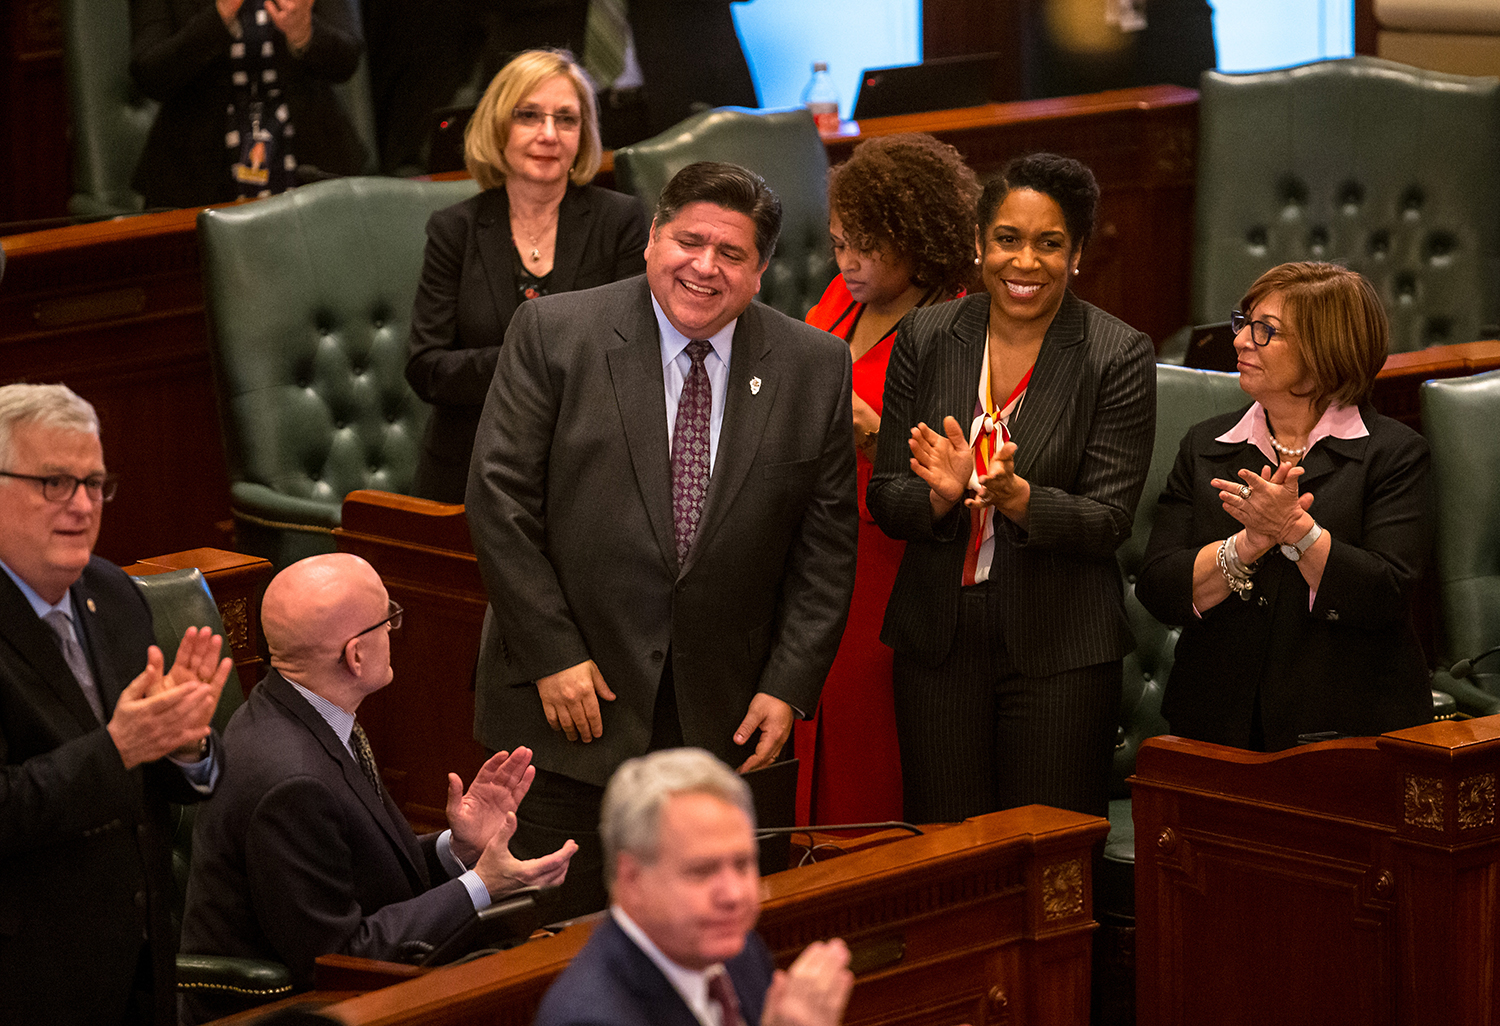 Illinois Governor JB Pritzker, left, and Illinois Lt. Gov. Juliana Stratton, right, are acknowledged for their presence on the House floor after Senate Bill 1, a bill to raise the minimum wage to $15 by 2025, passed the House with a vote of 69-47 at the Illinois State Capitol, Thursday, Feb. 14, 2019, in Springfield, Ill. [Justin L. Fowler/The State Journal-Register]